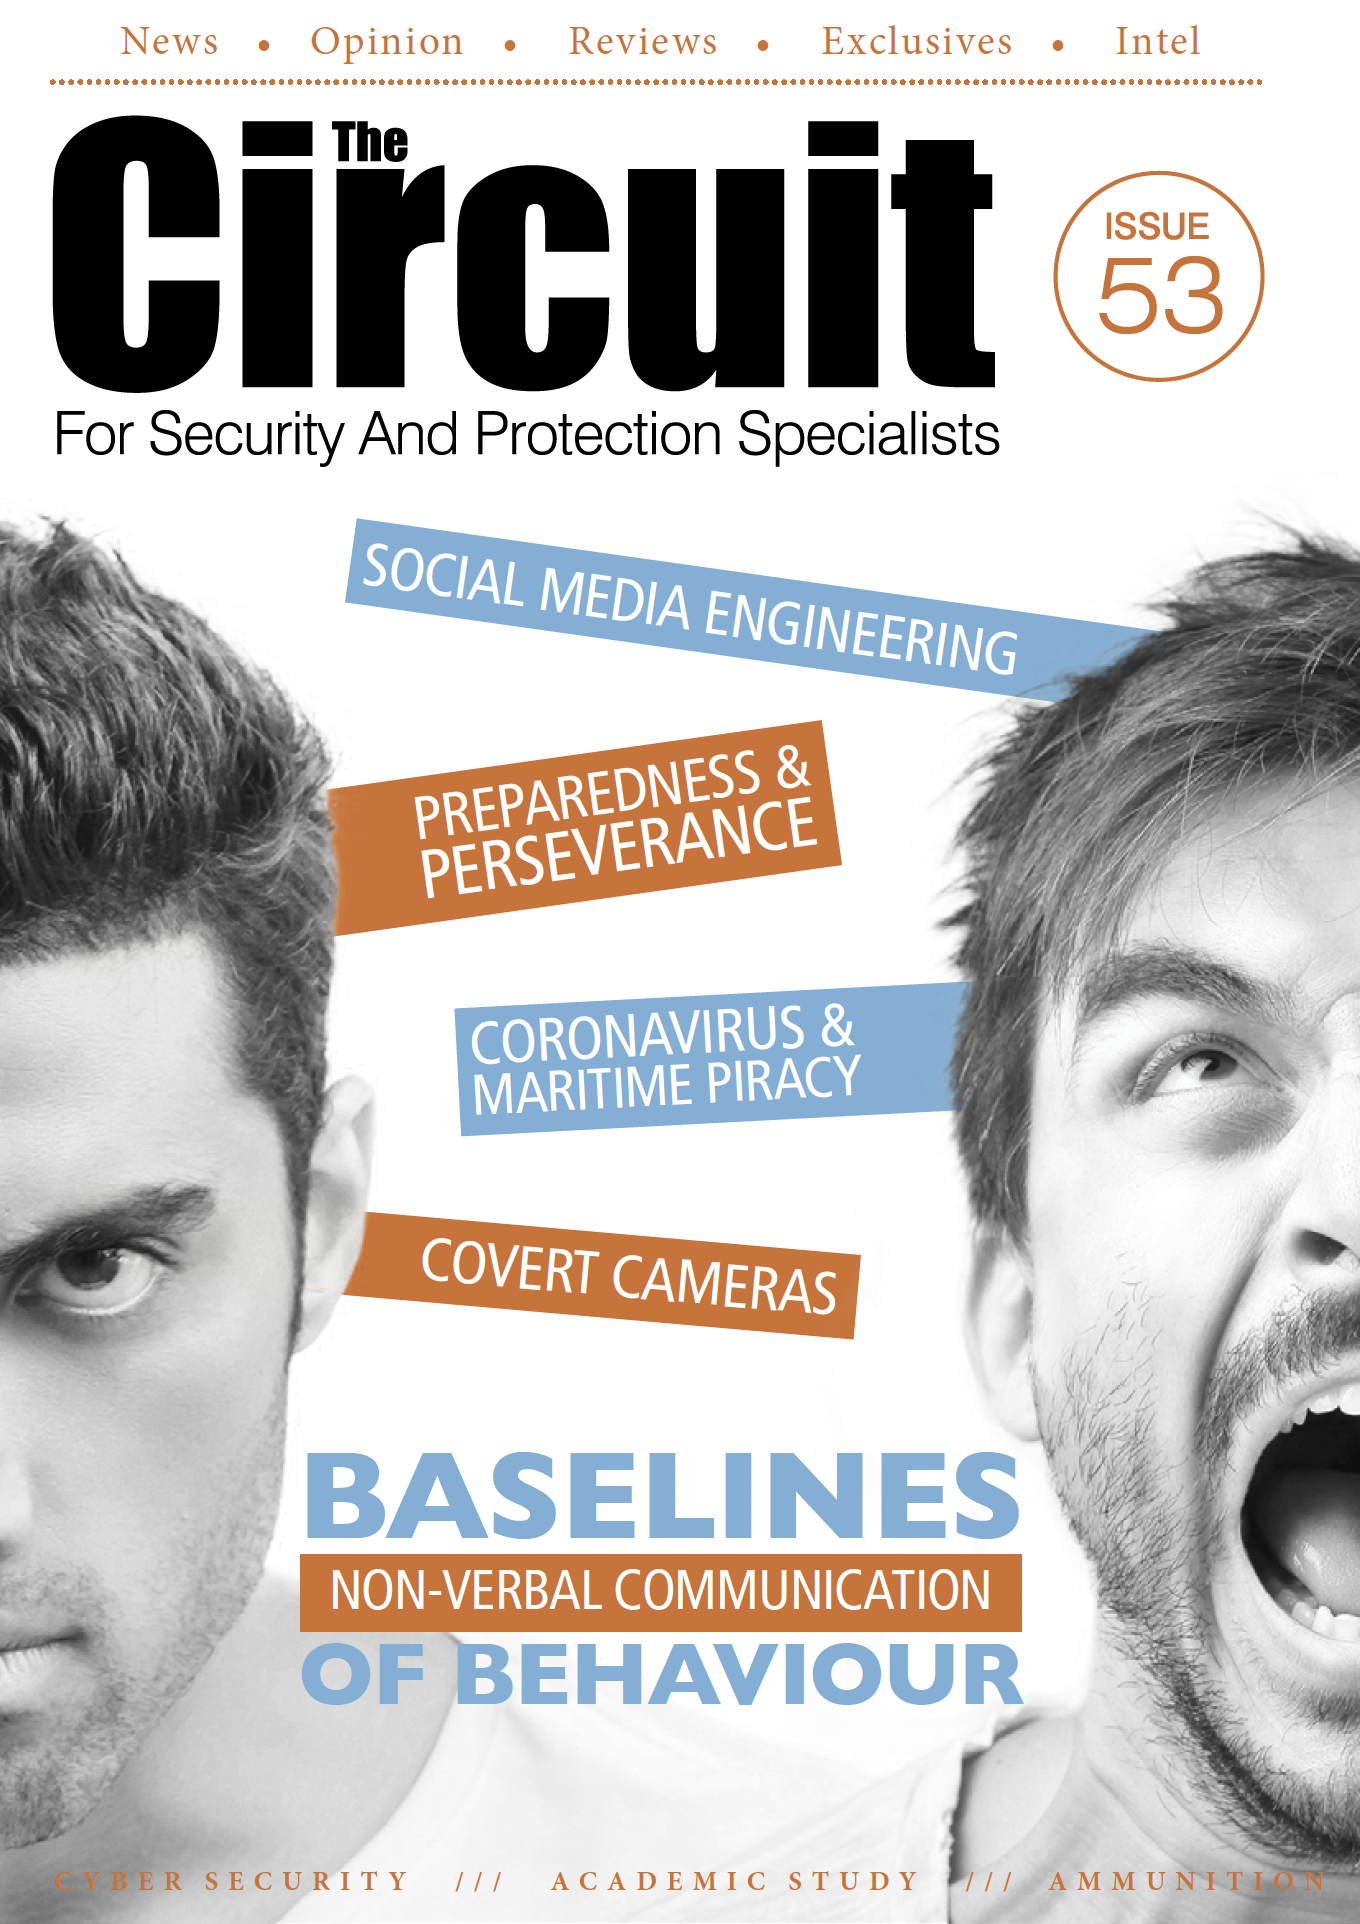 Circuit Magazine issue 53 cover